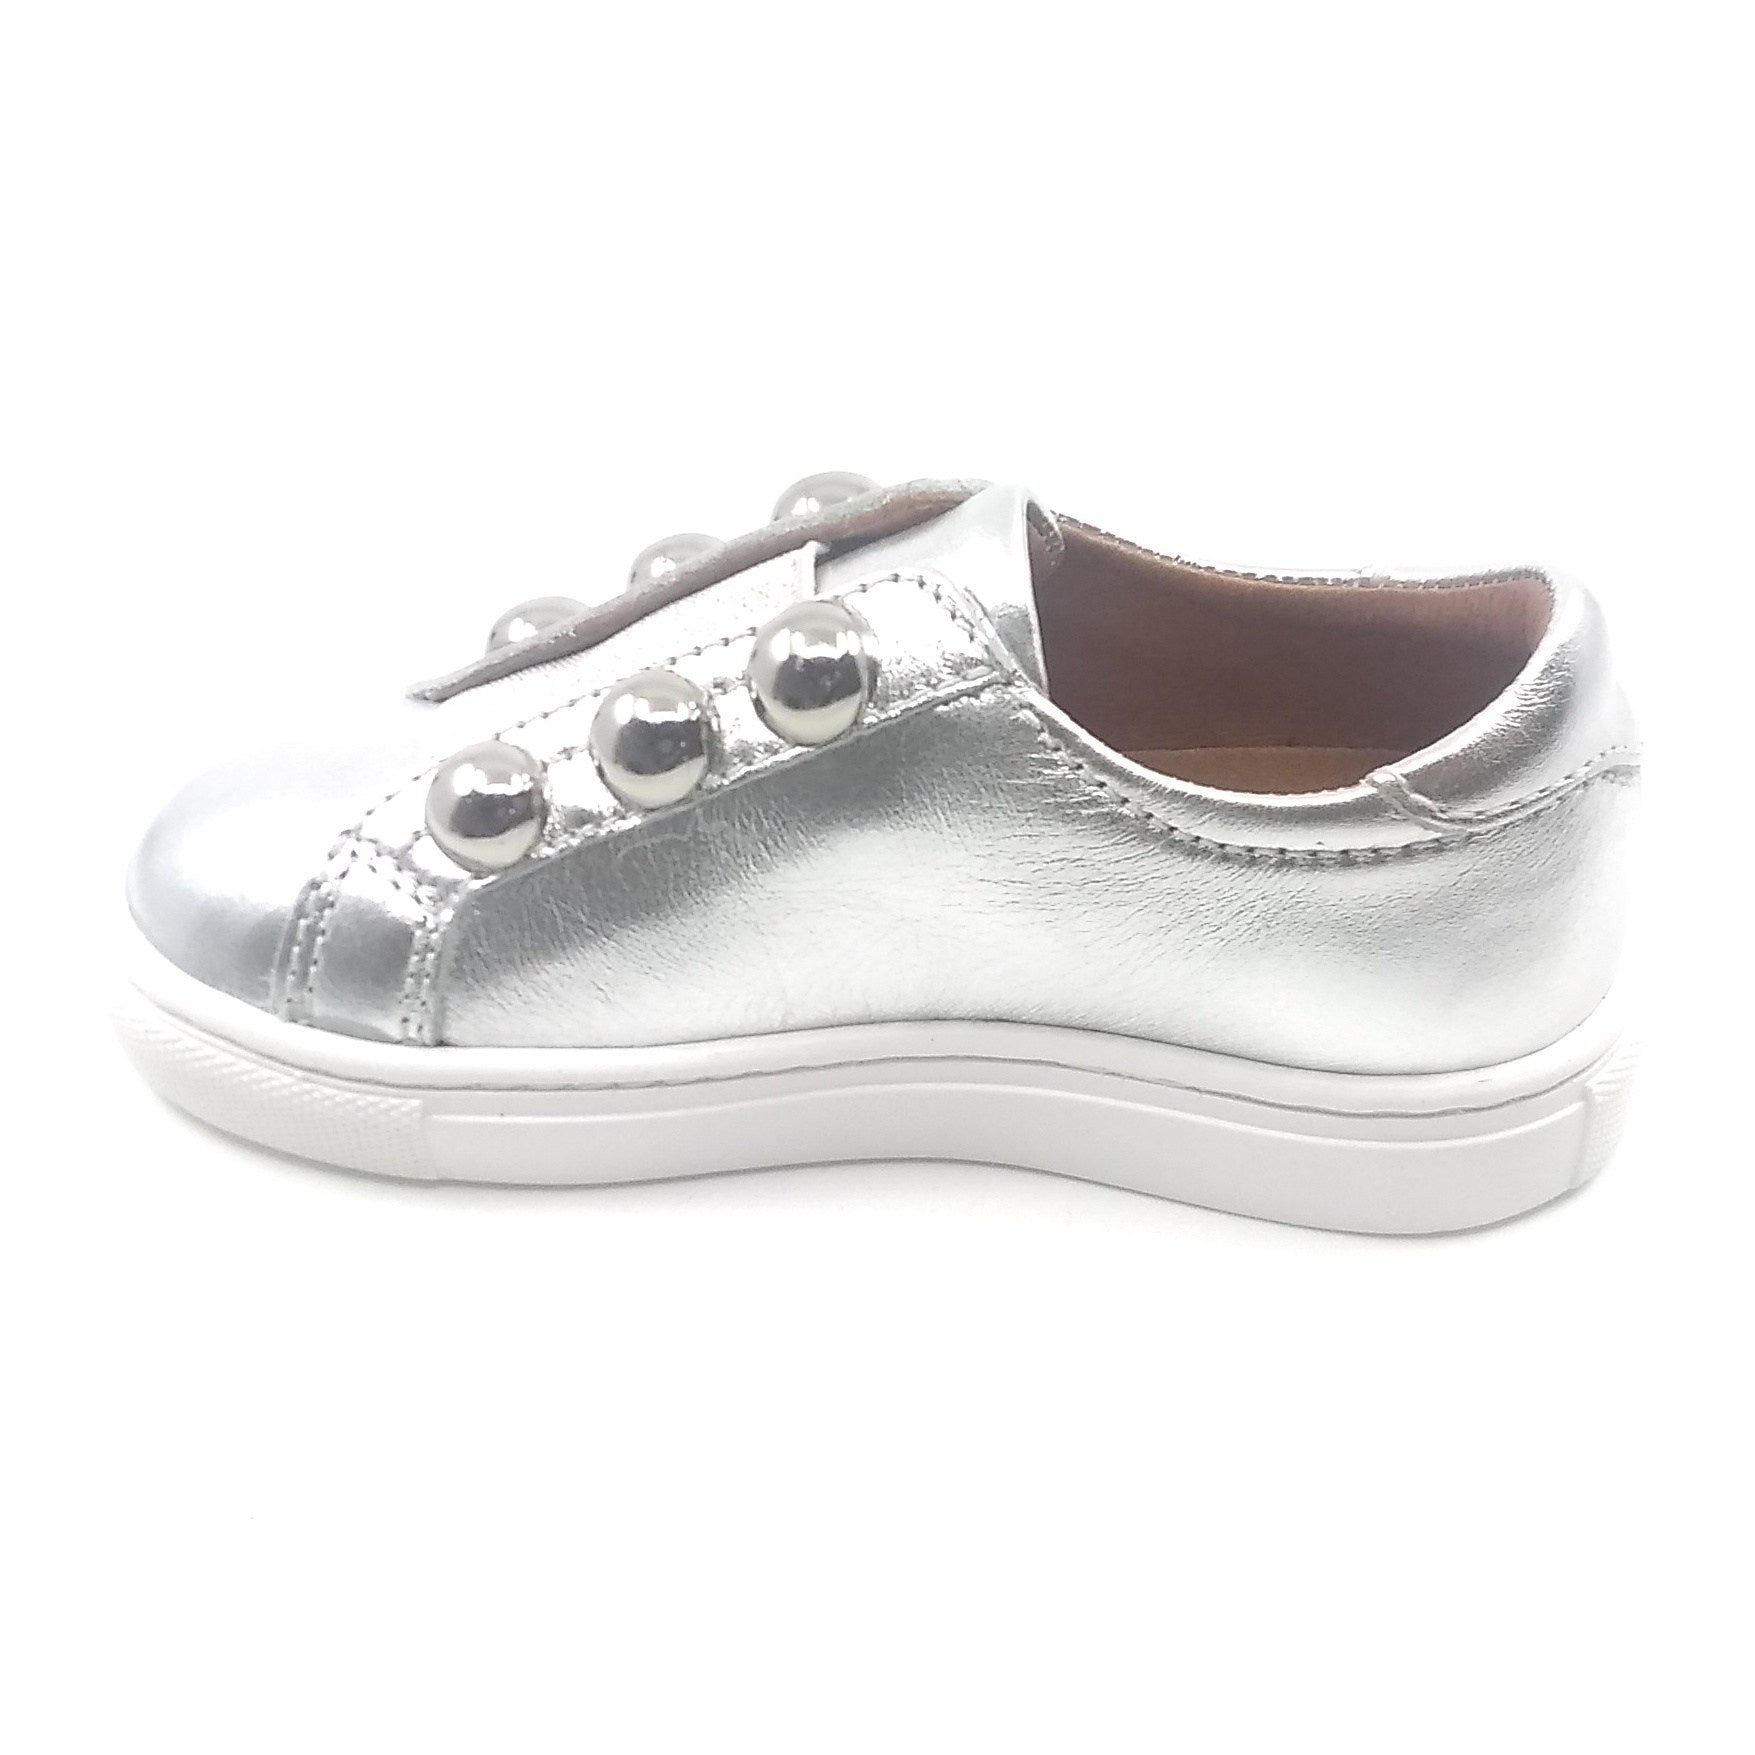 Atlanta Mocassin Silver Sneaker with Studs